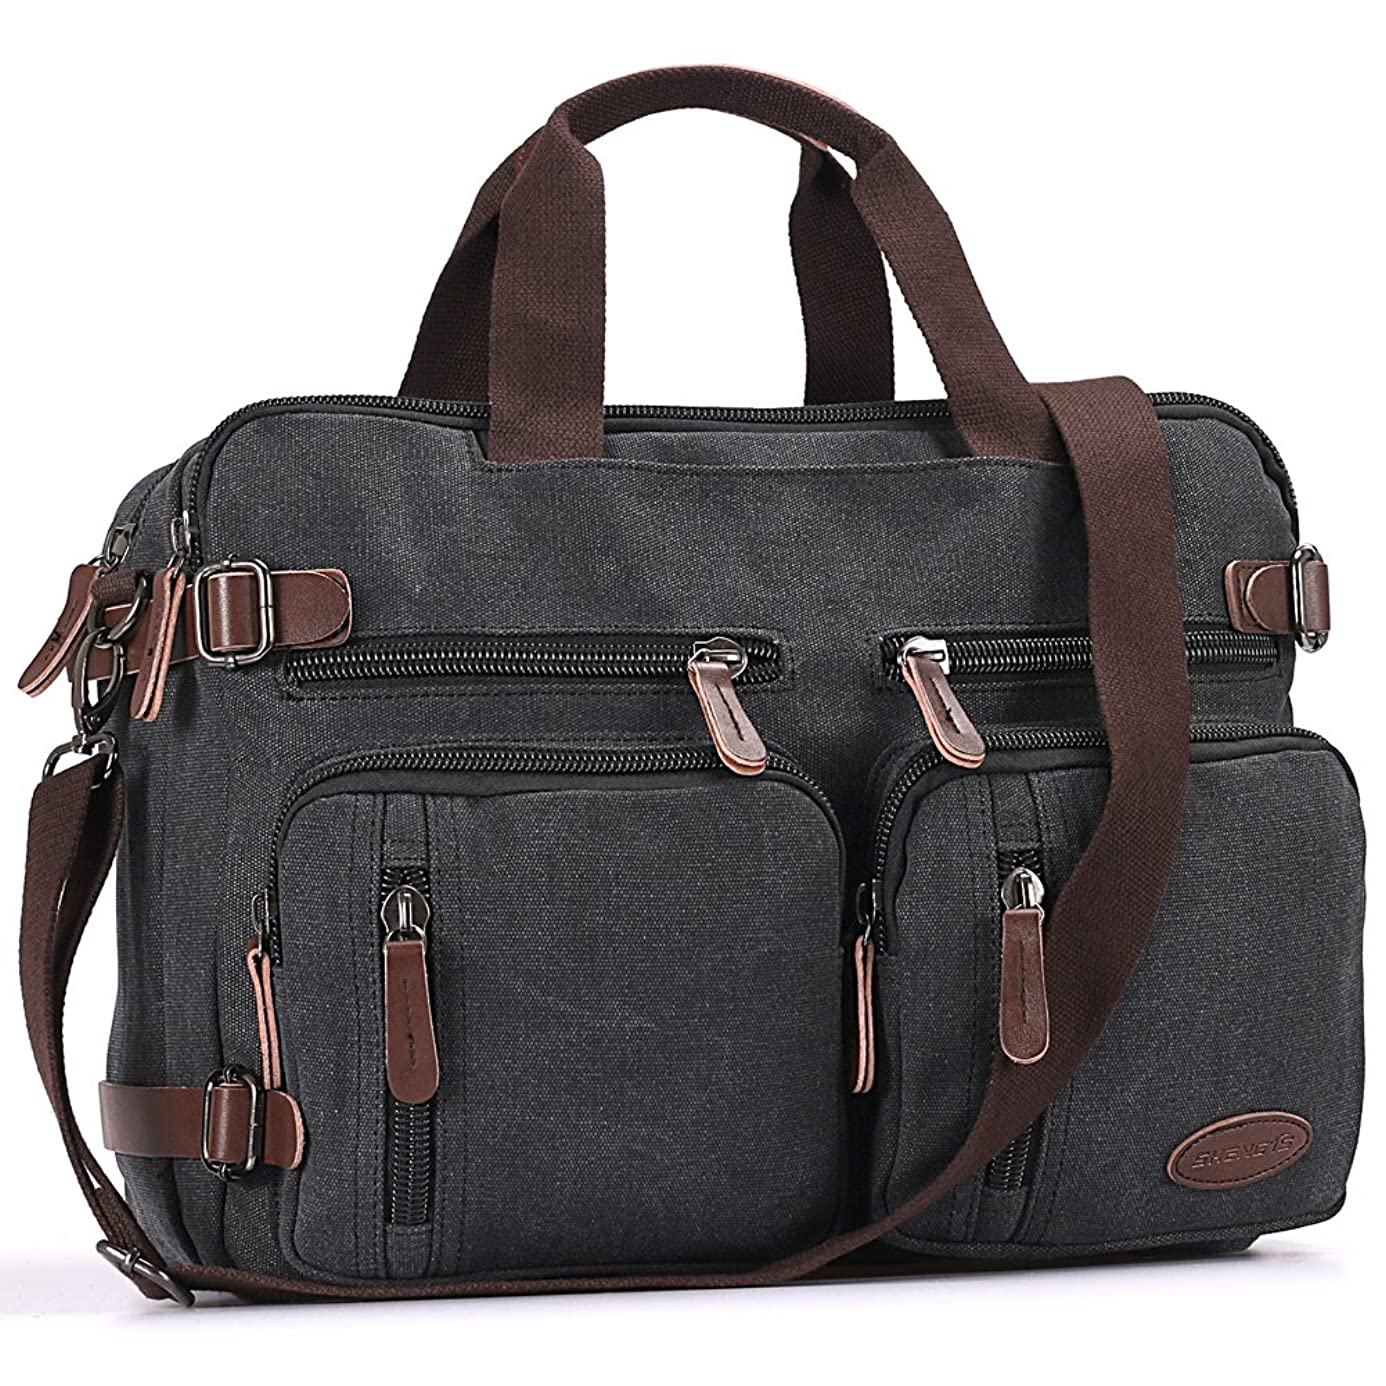 Laptop Backpack,Multifunction Briefcase Messenger Bag 15.6 Inch Laptop Bag for Men,Women